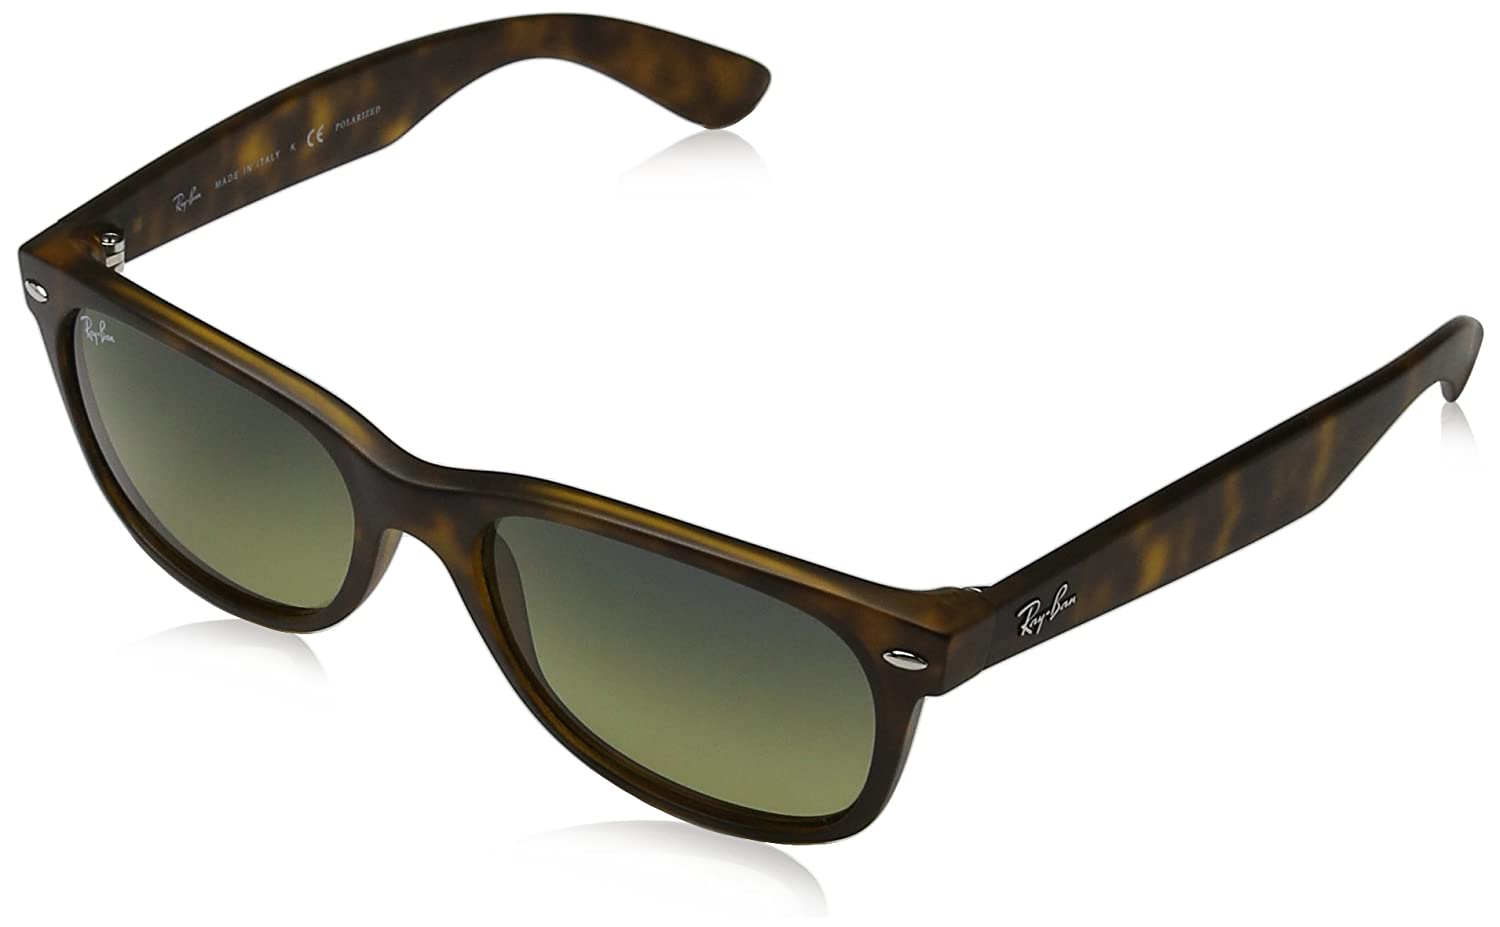 c9c57c00fd7 Ray Ban RB2132 New Wayfarer Sunglasses - 894 76 Tortoise (Polarized Blue  Green Gradient Lens) - 52mm  Ray-Ban  Amazon.in  Clothing   Accessories